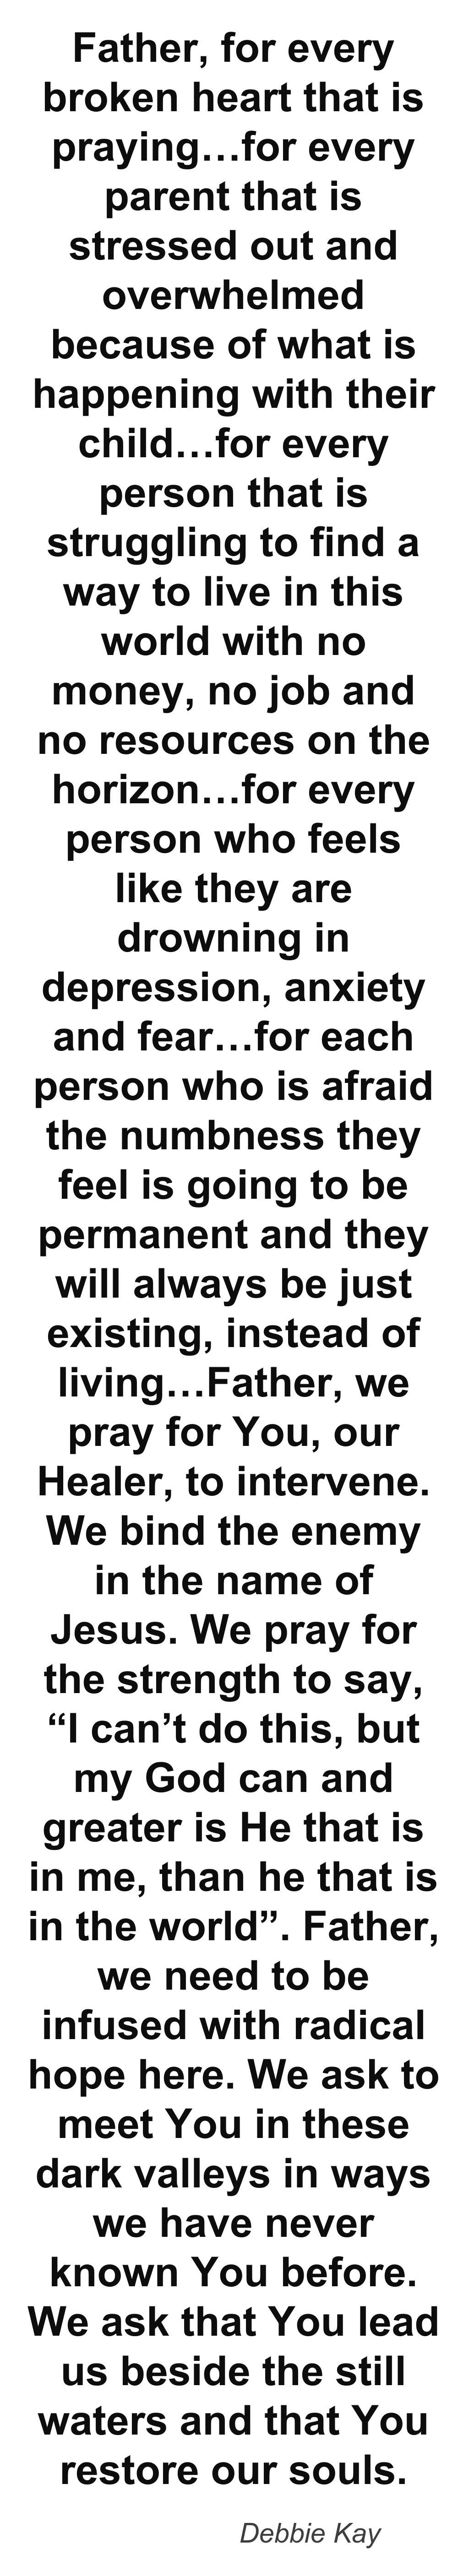 Morning prayer for all that are hurting god christ hope love world life faith jesus cross christian bible quotes dreams truth humble patient gentle